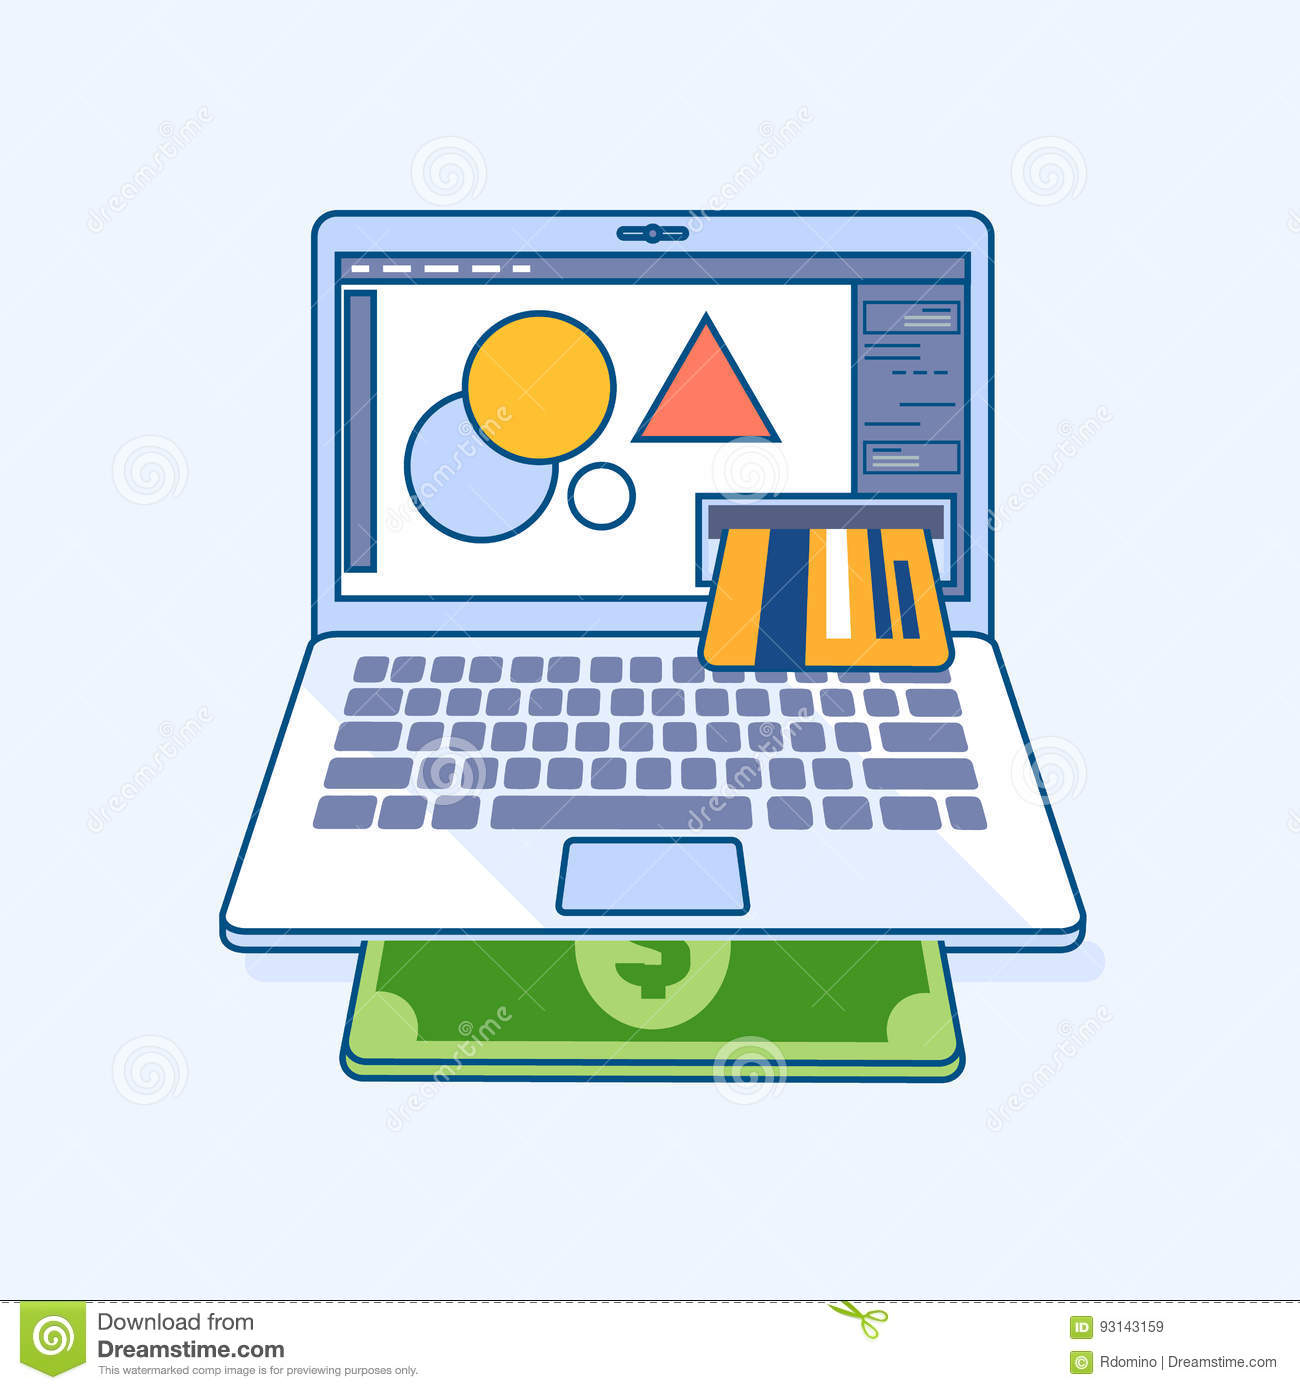 Freelance Designer Laptop With Income Credit Card Gives. Card Readers For Android Phones. Criminal Attorney Arizona Saga Legal Software. Phila Community College Movers Fort Worth Tx. Good Deals On Hotels In New York City. Web Service Client Application. Remote Desktop For Mac Free Download. Child Custody Attorney C Programming Training. Divorce Lawyers In Montgomery County Pa